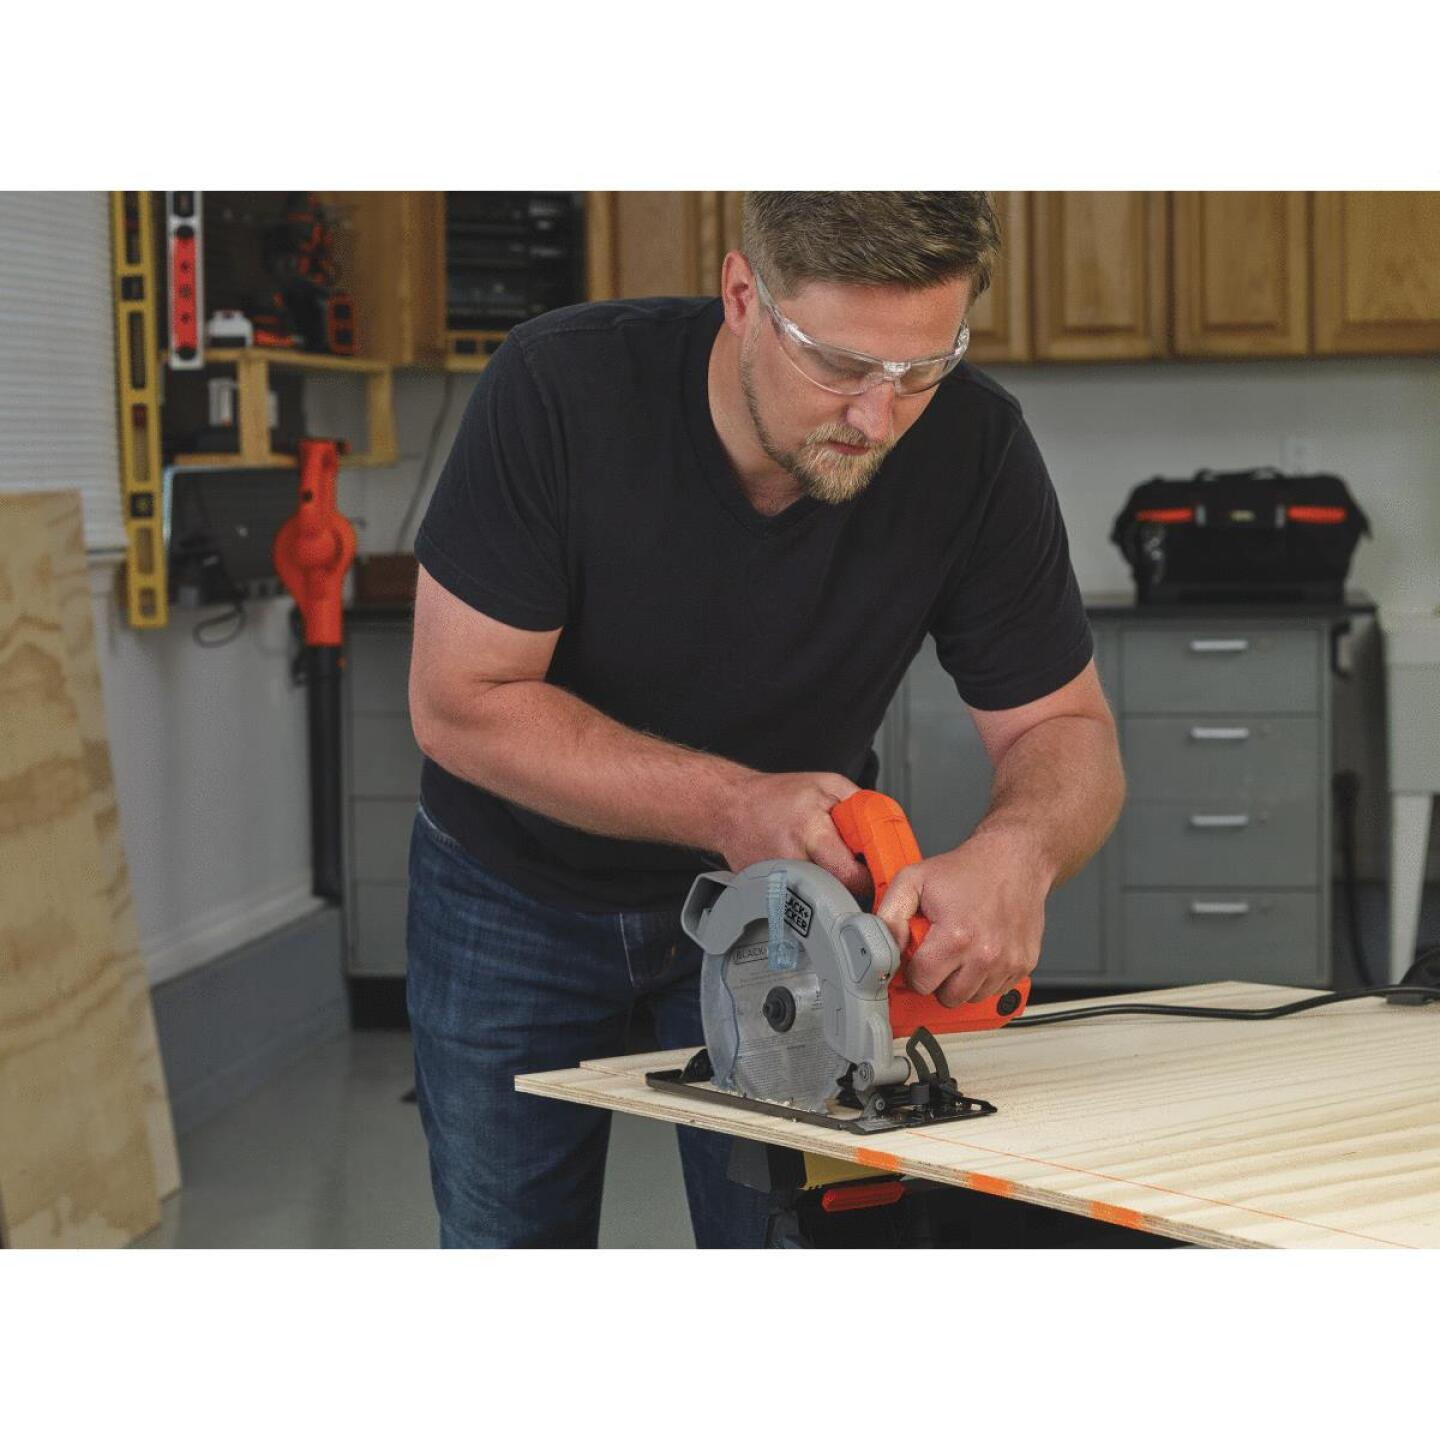 Black & Decker 7-1/4 In. 13-Amp Circular Saw with Laser Image 5